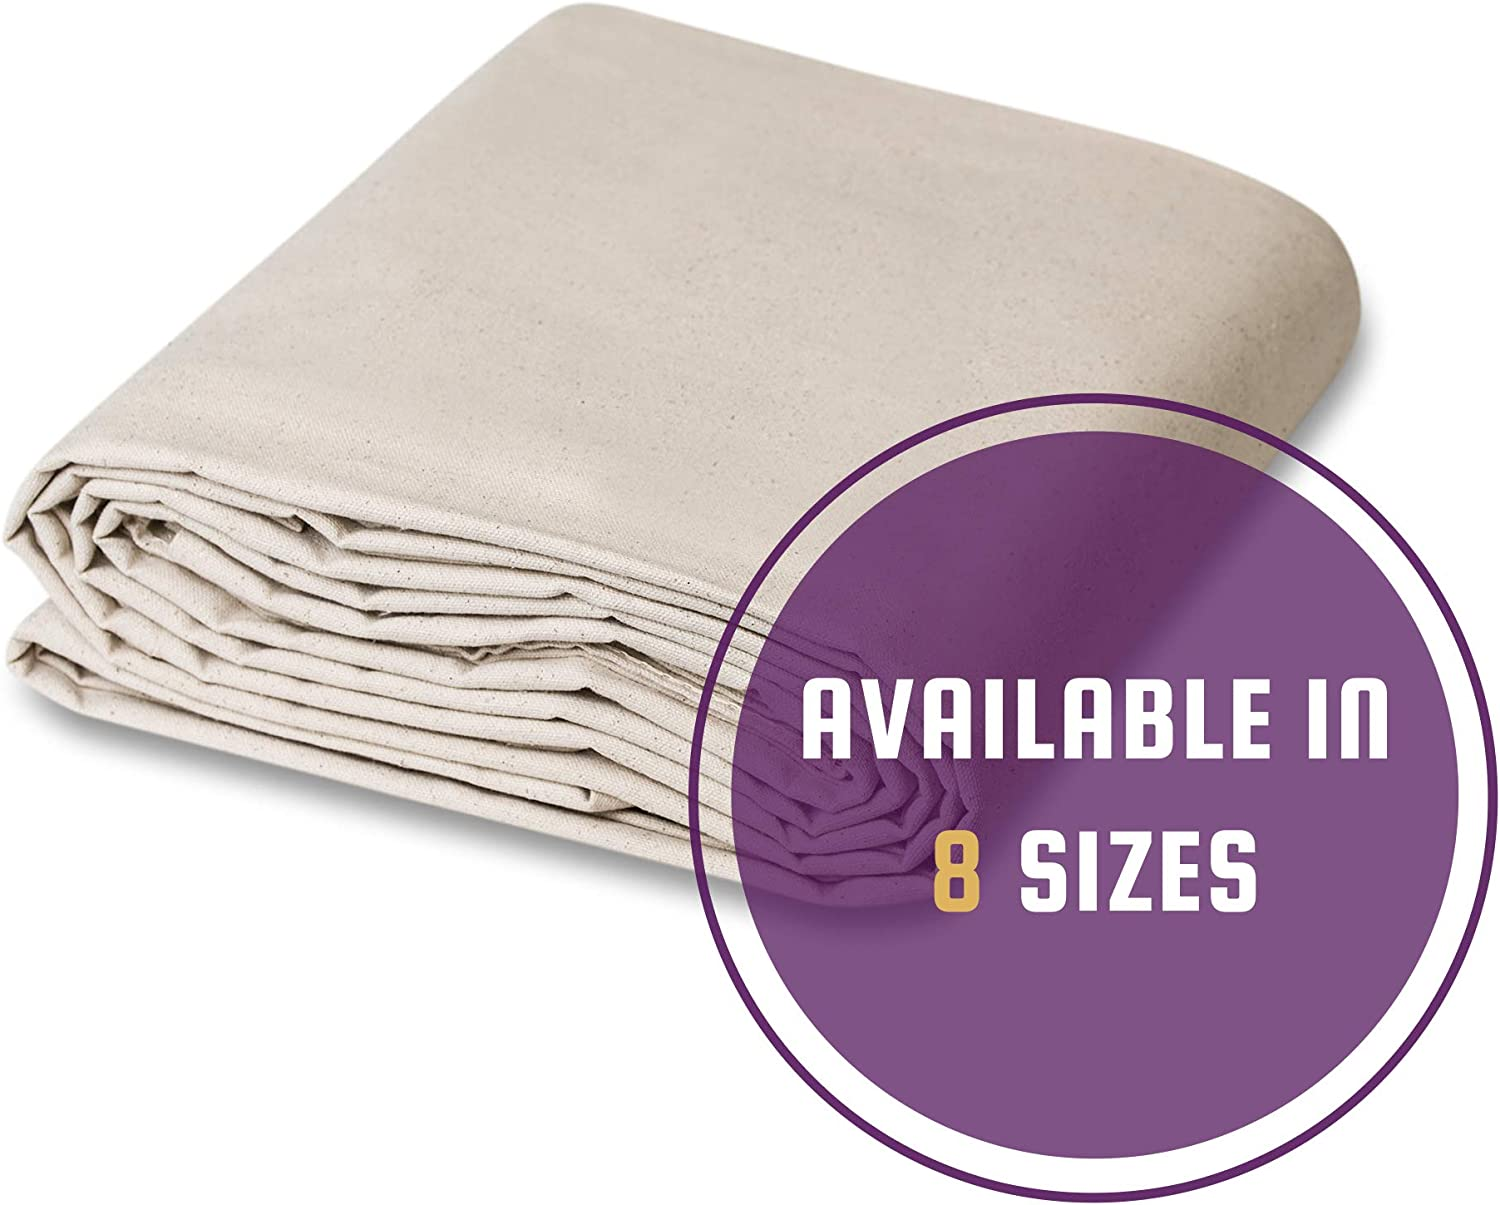 CCS CHICAGO CANVAS & SUPPLY All Purpose Canvas Cotton Drop Cloth, 4 by 50 Feet - -